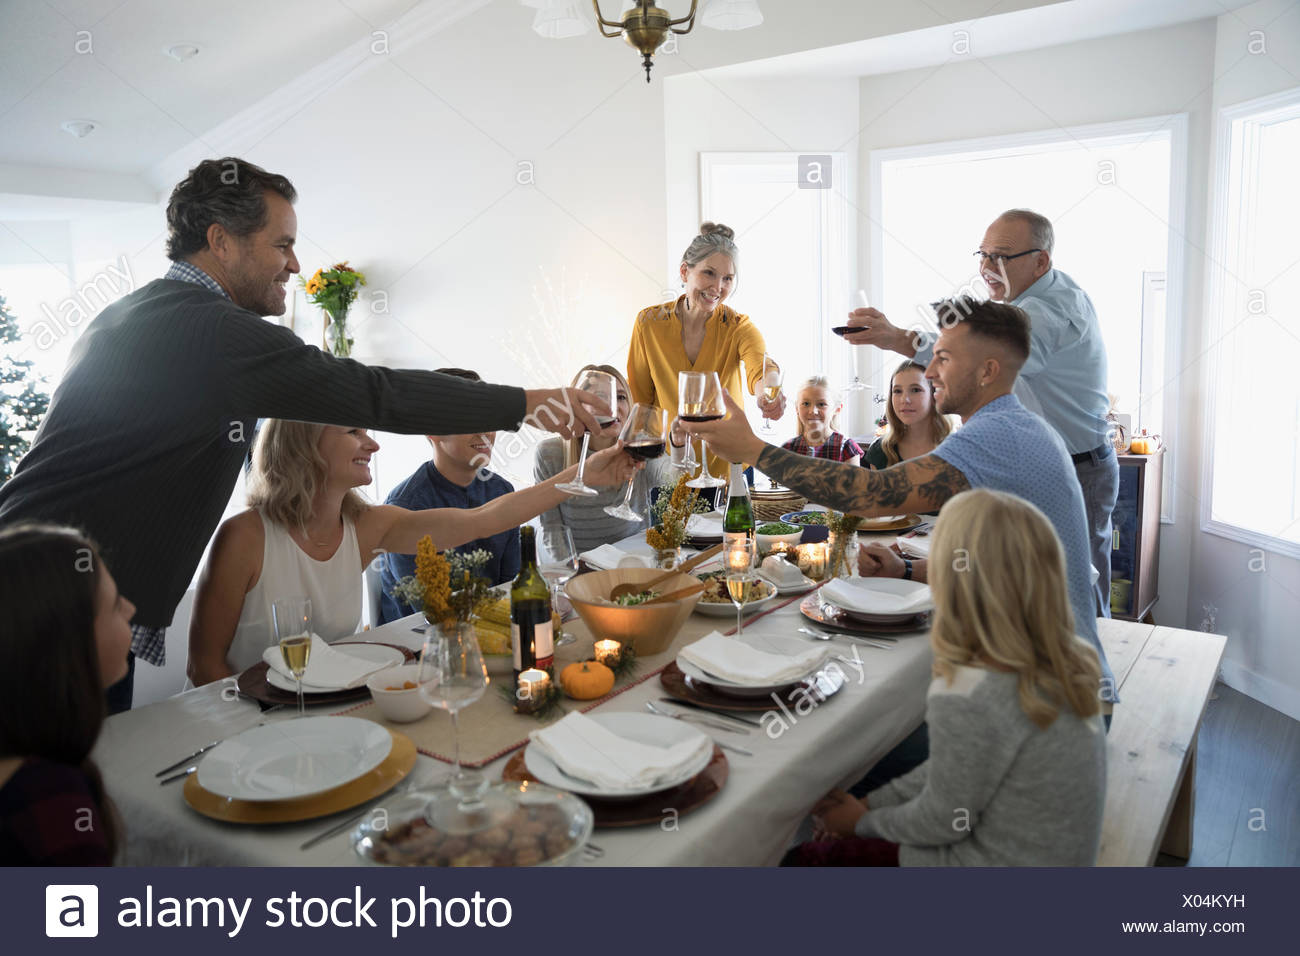 Family and friends toasting champagne and wine glasses at Thanksgiving dinner table - Stock Image